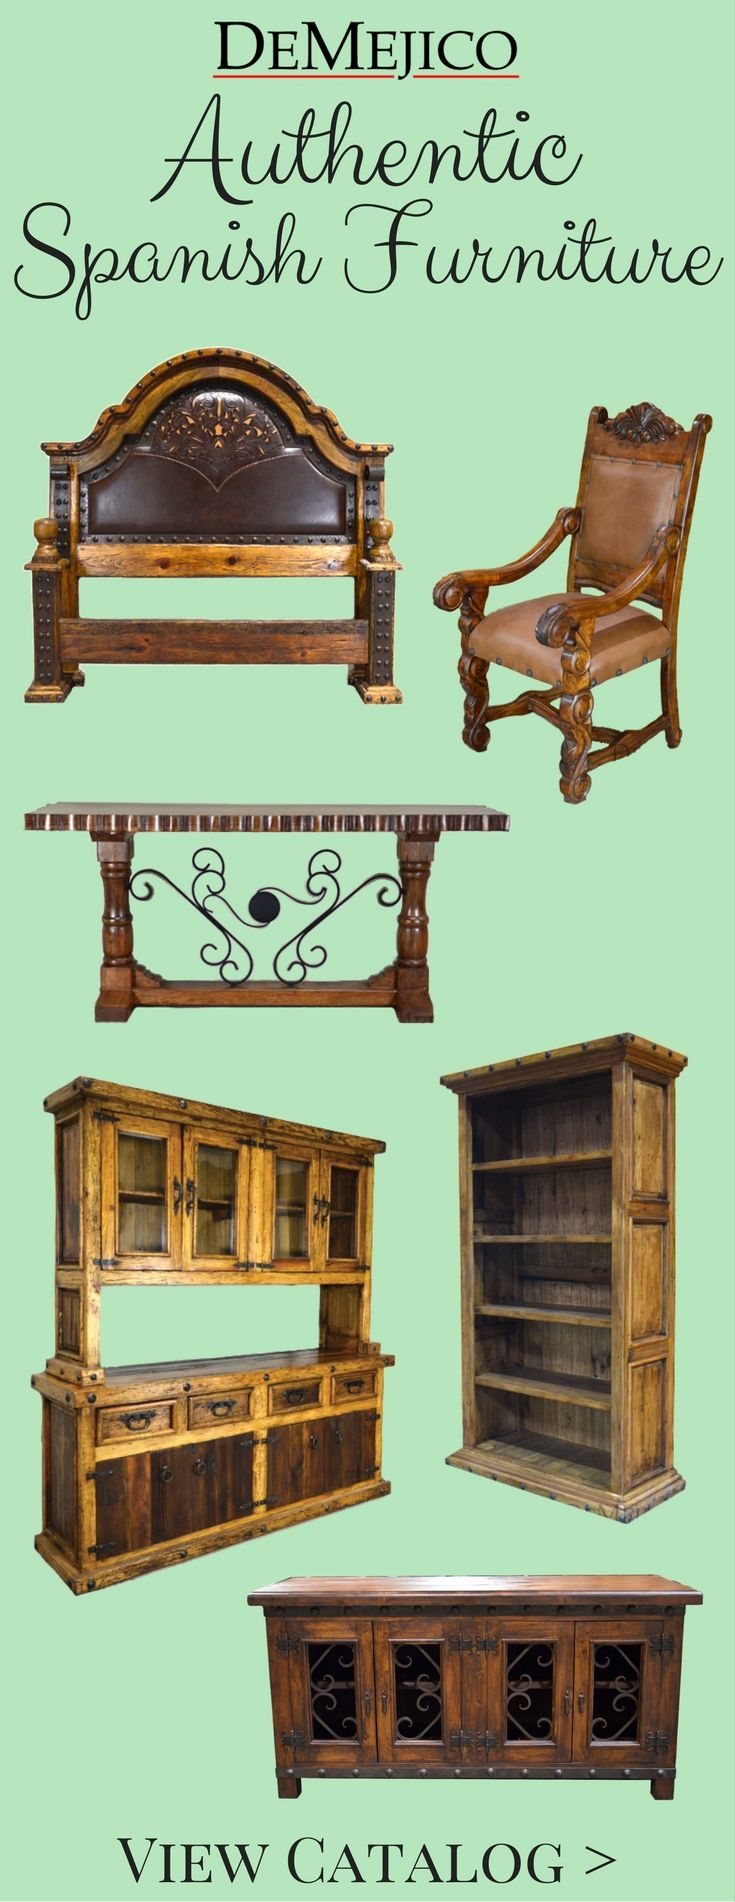 Authentic & Handcrafted Rustic Spanish Style Furniture